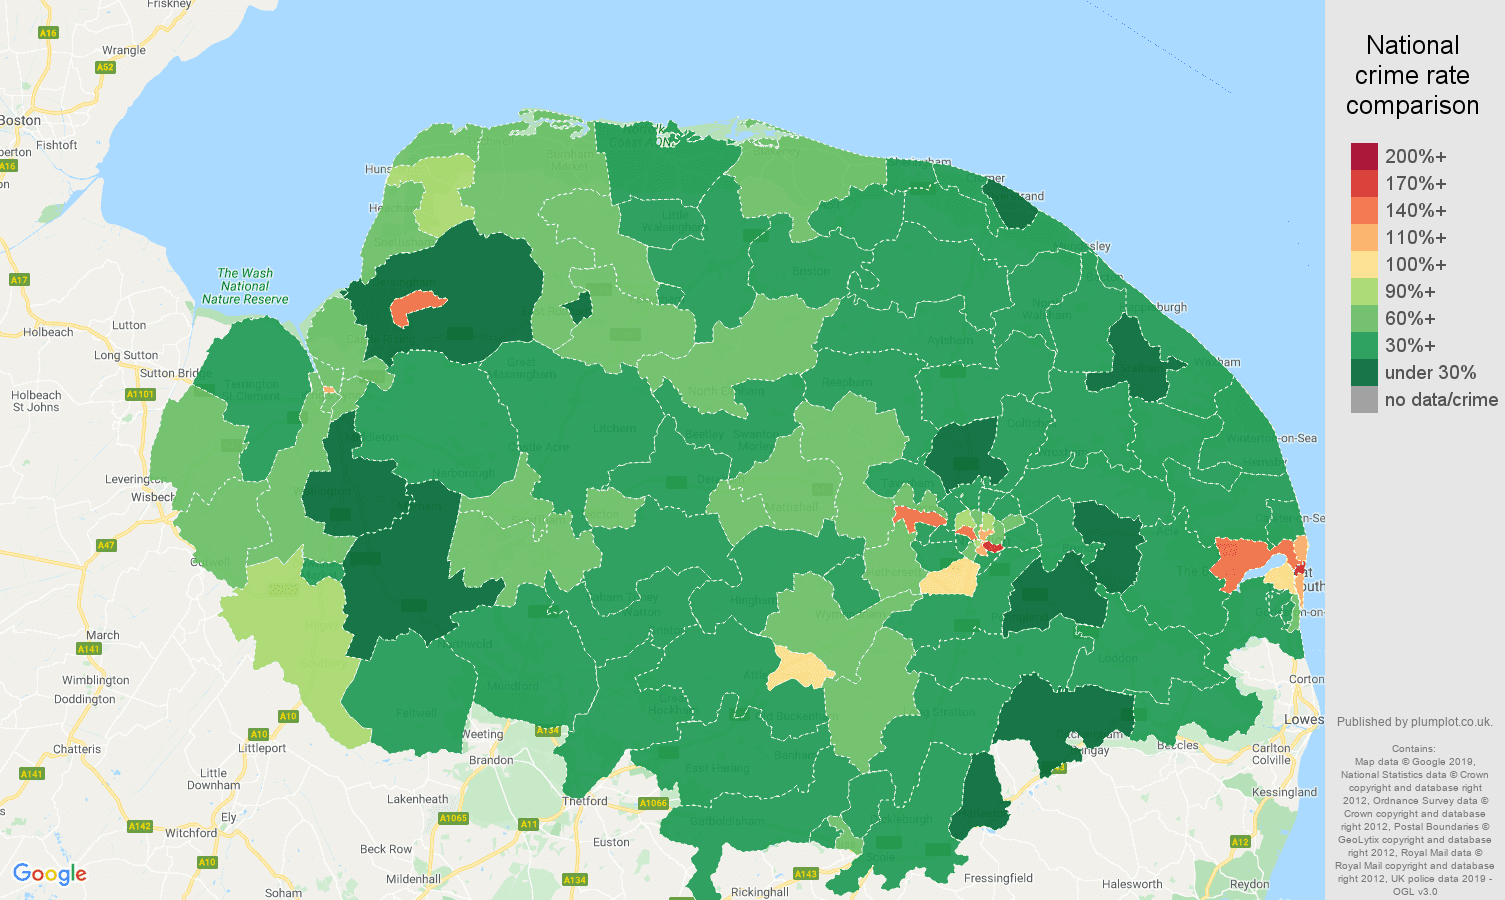 Norfolk other theft crime rate comparison map